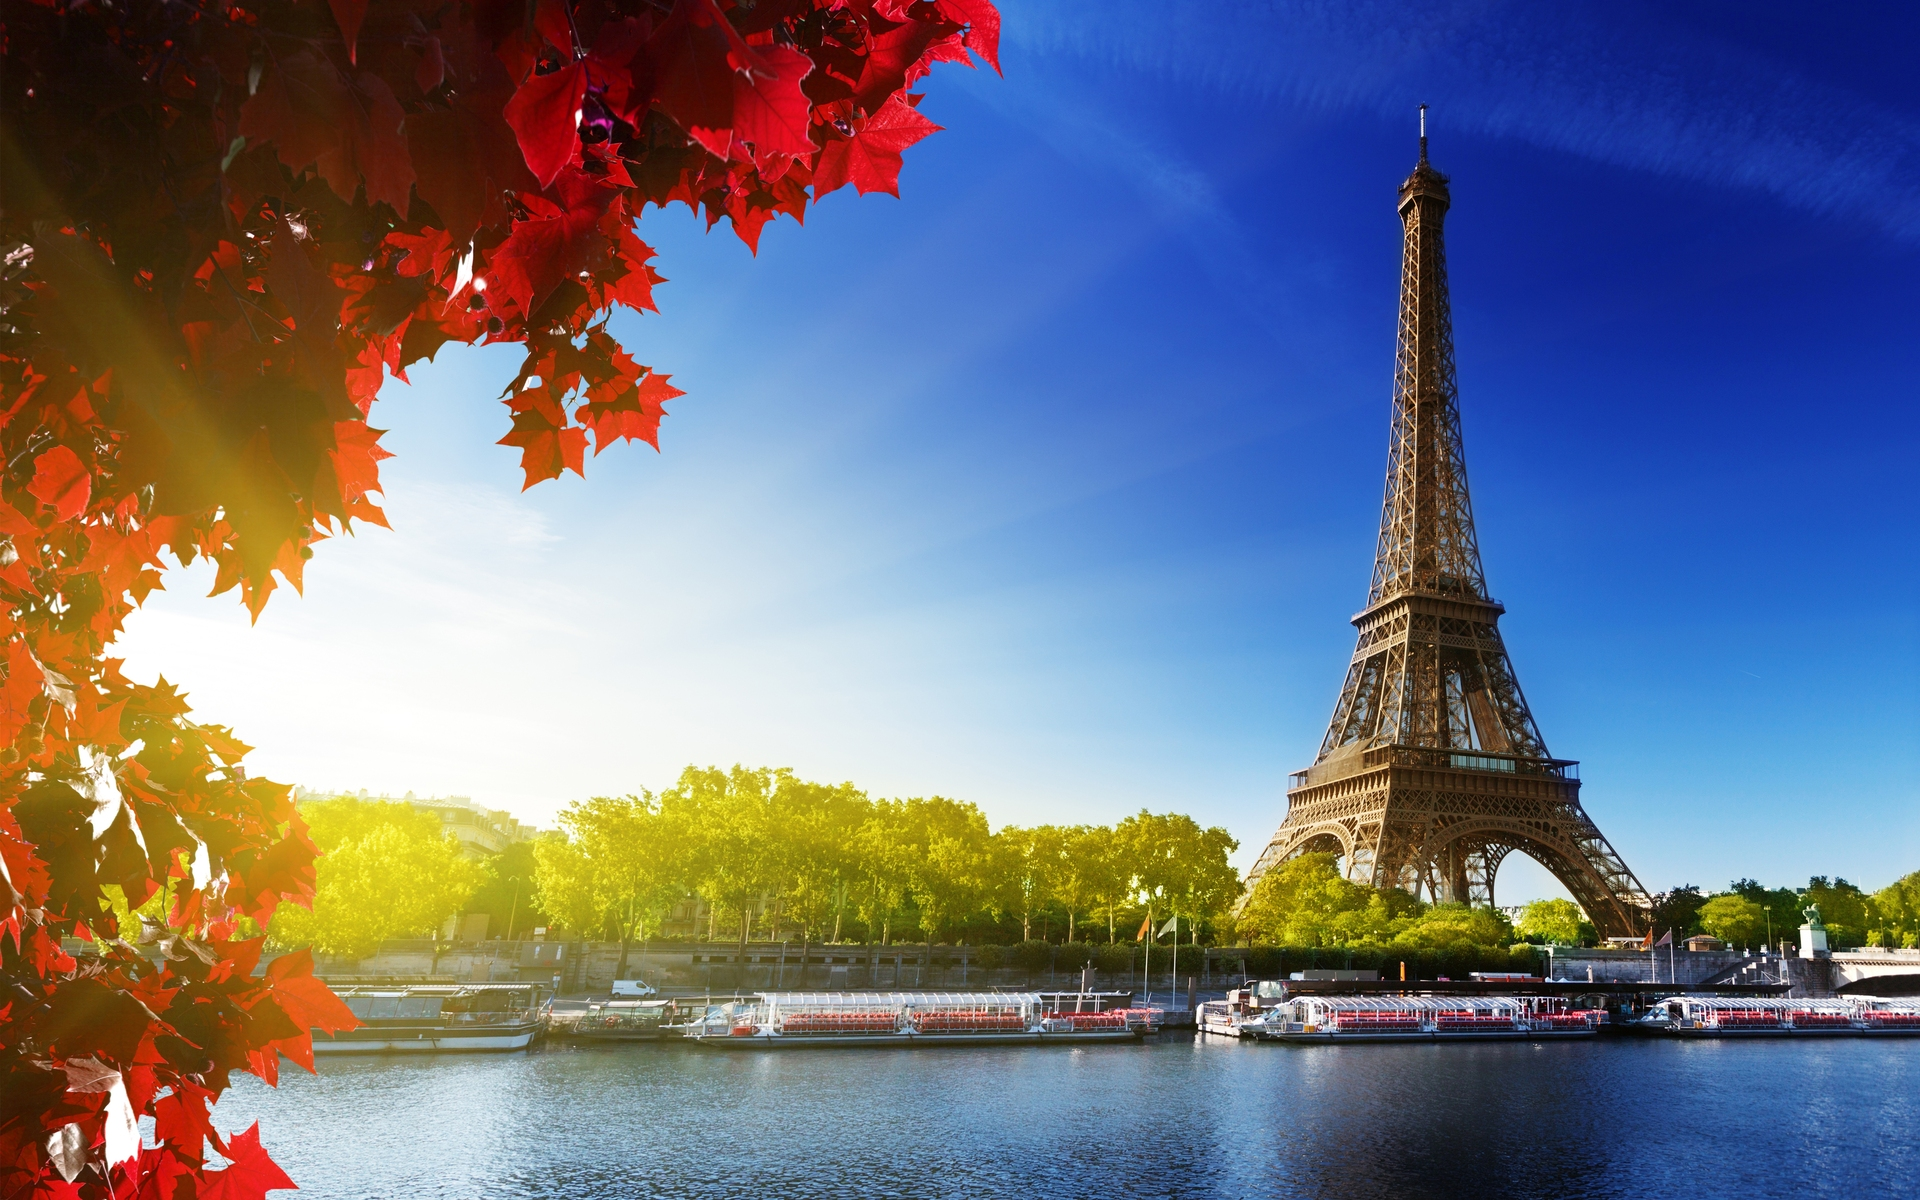 25/11/2016· france has a very diverse landscape. 430 France HD Wallpapers | Background Images - Wallpaper Abyss